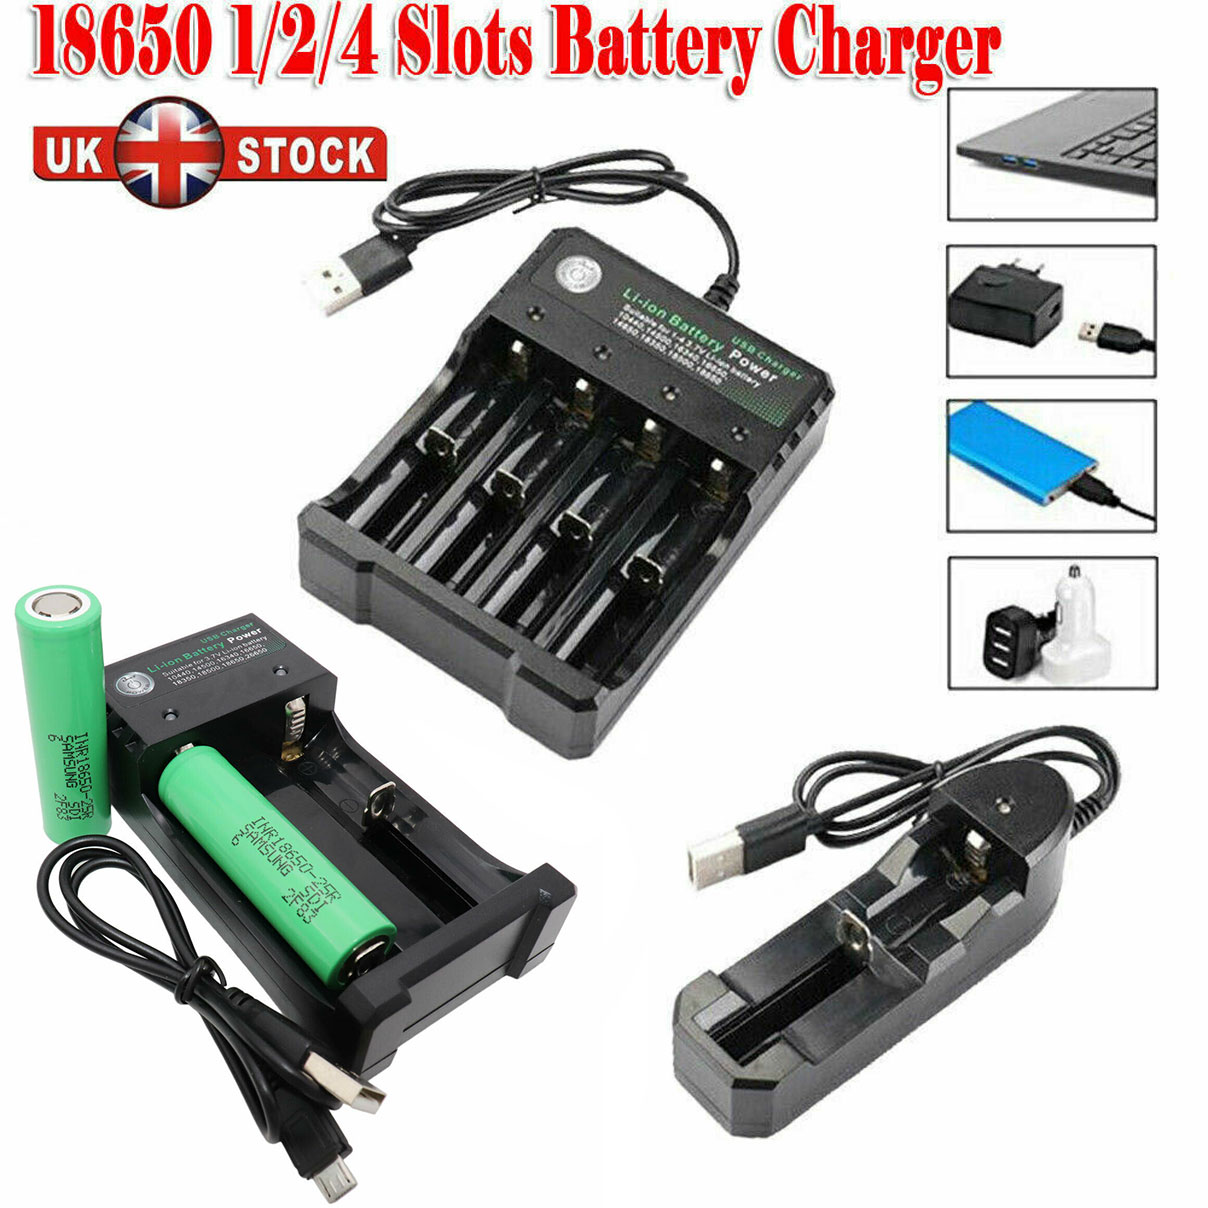 10 PCS Universal Chargers for 3.7v 18650 Rechargeable Li-ion Battery US Stock